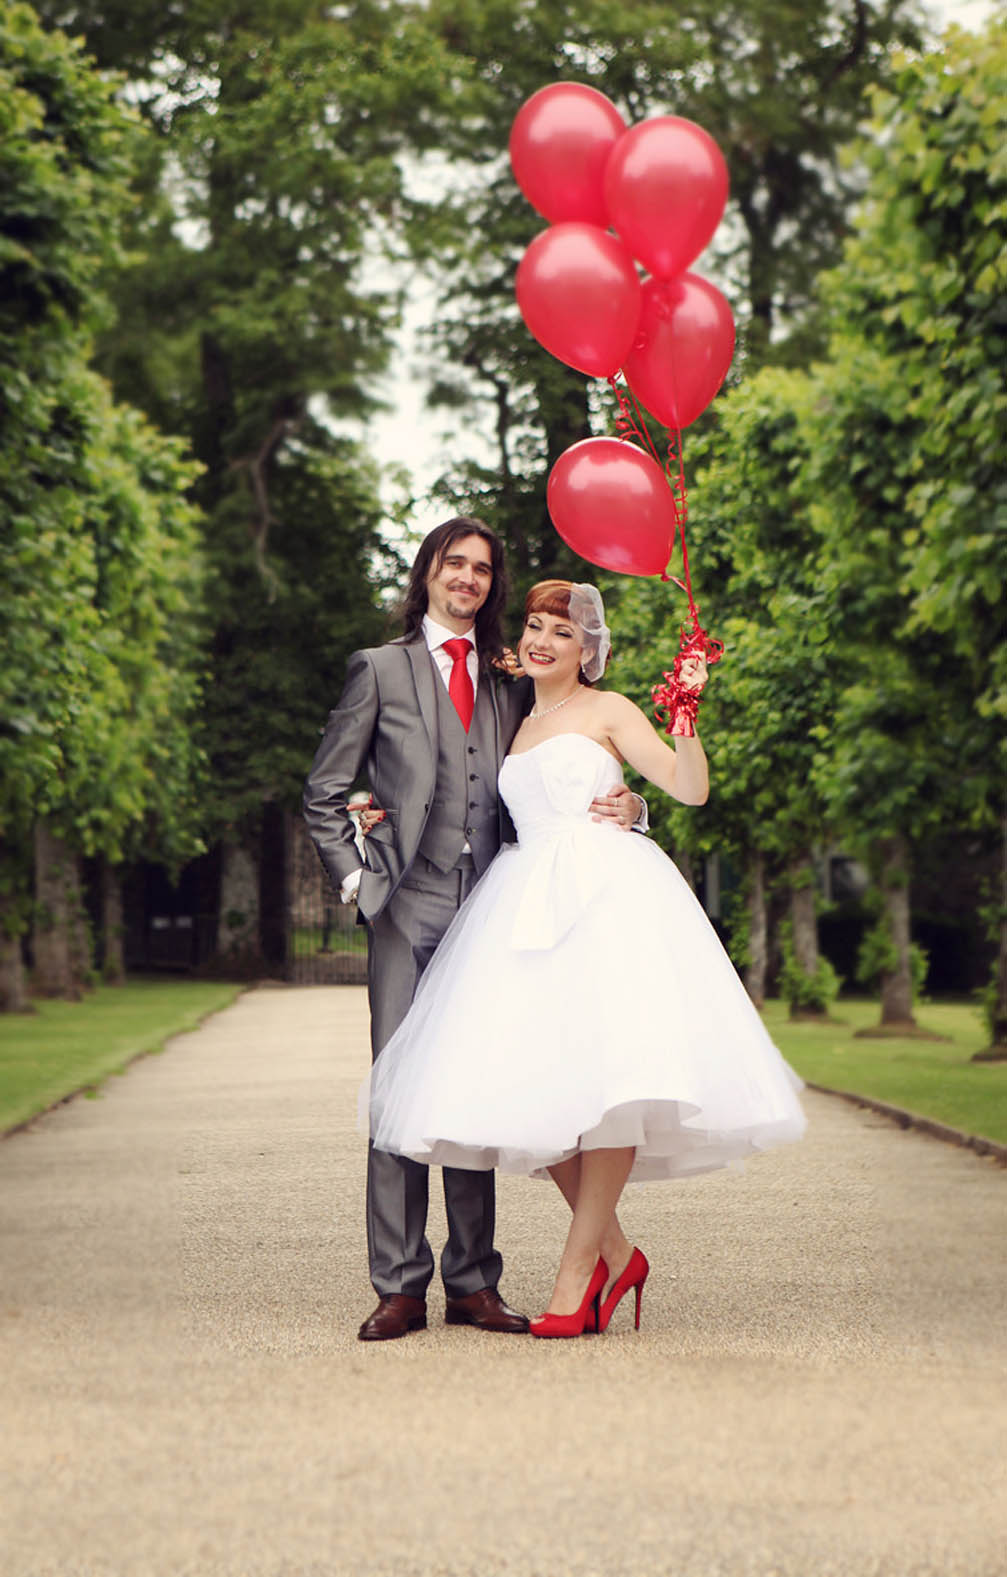 Walk Down The Aisle Songs Uk 2014 Party Invitations Ideas